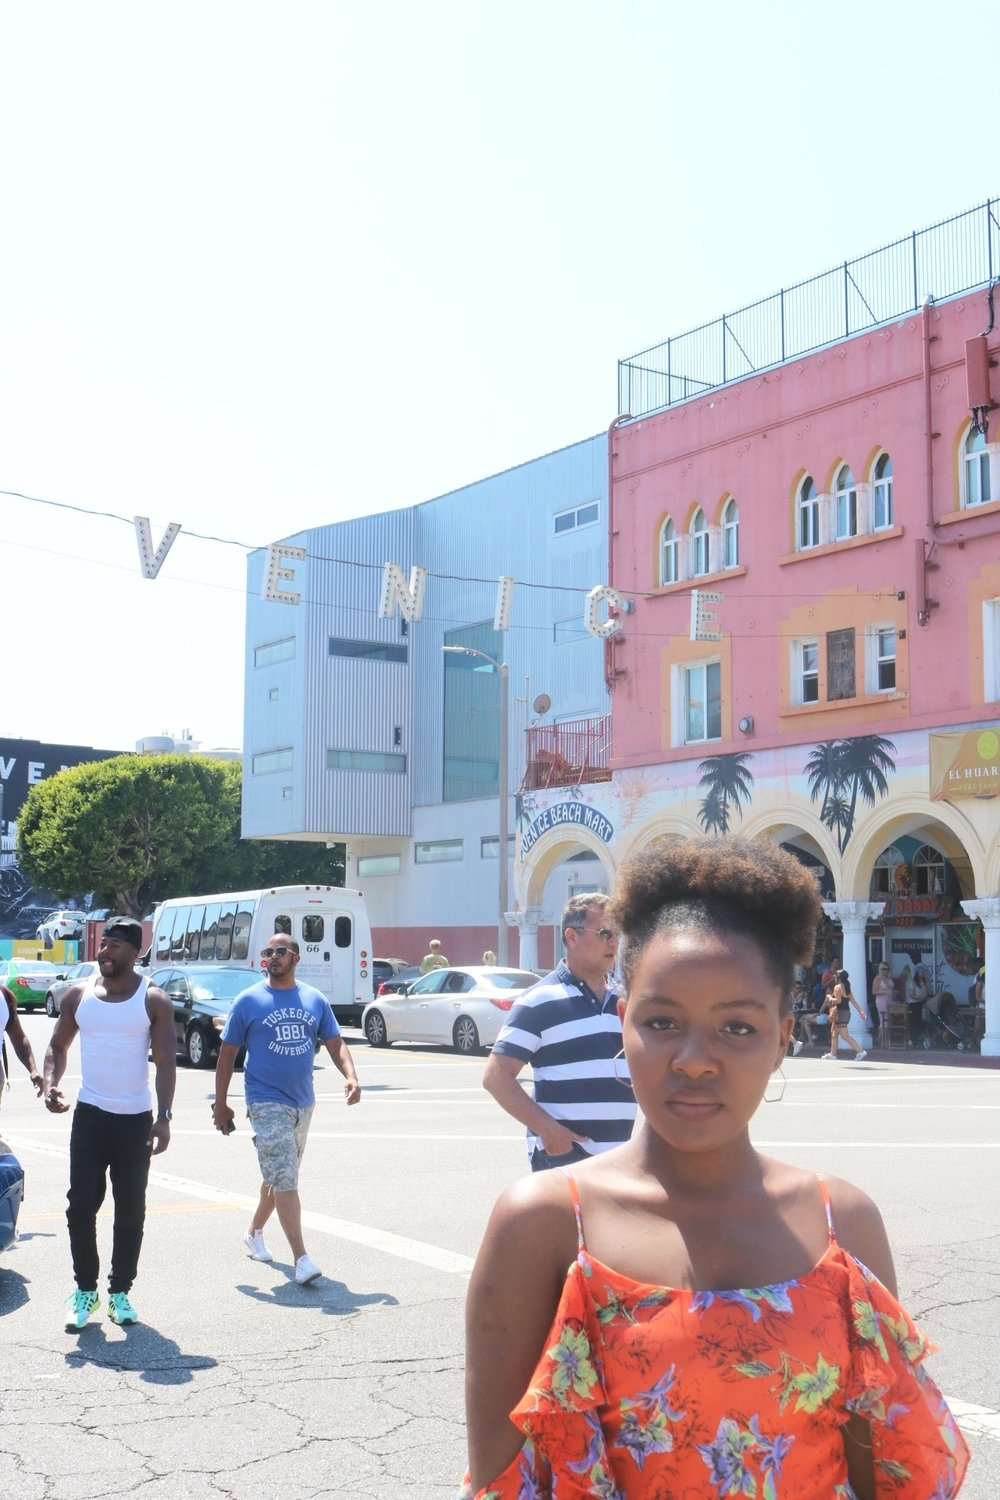 Nonee in Venice Beach